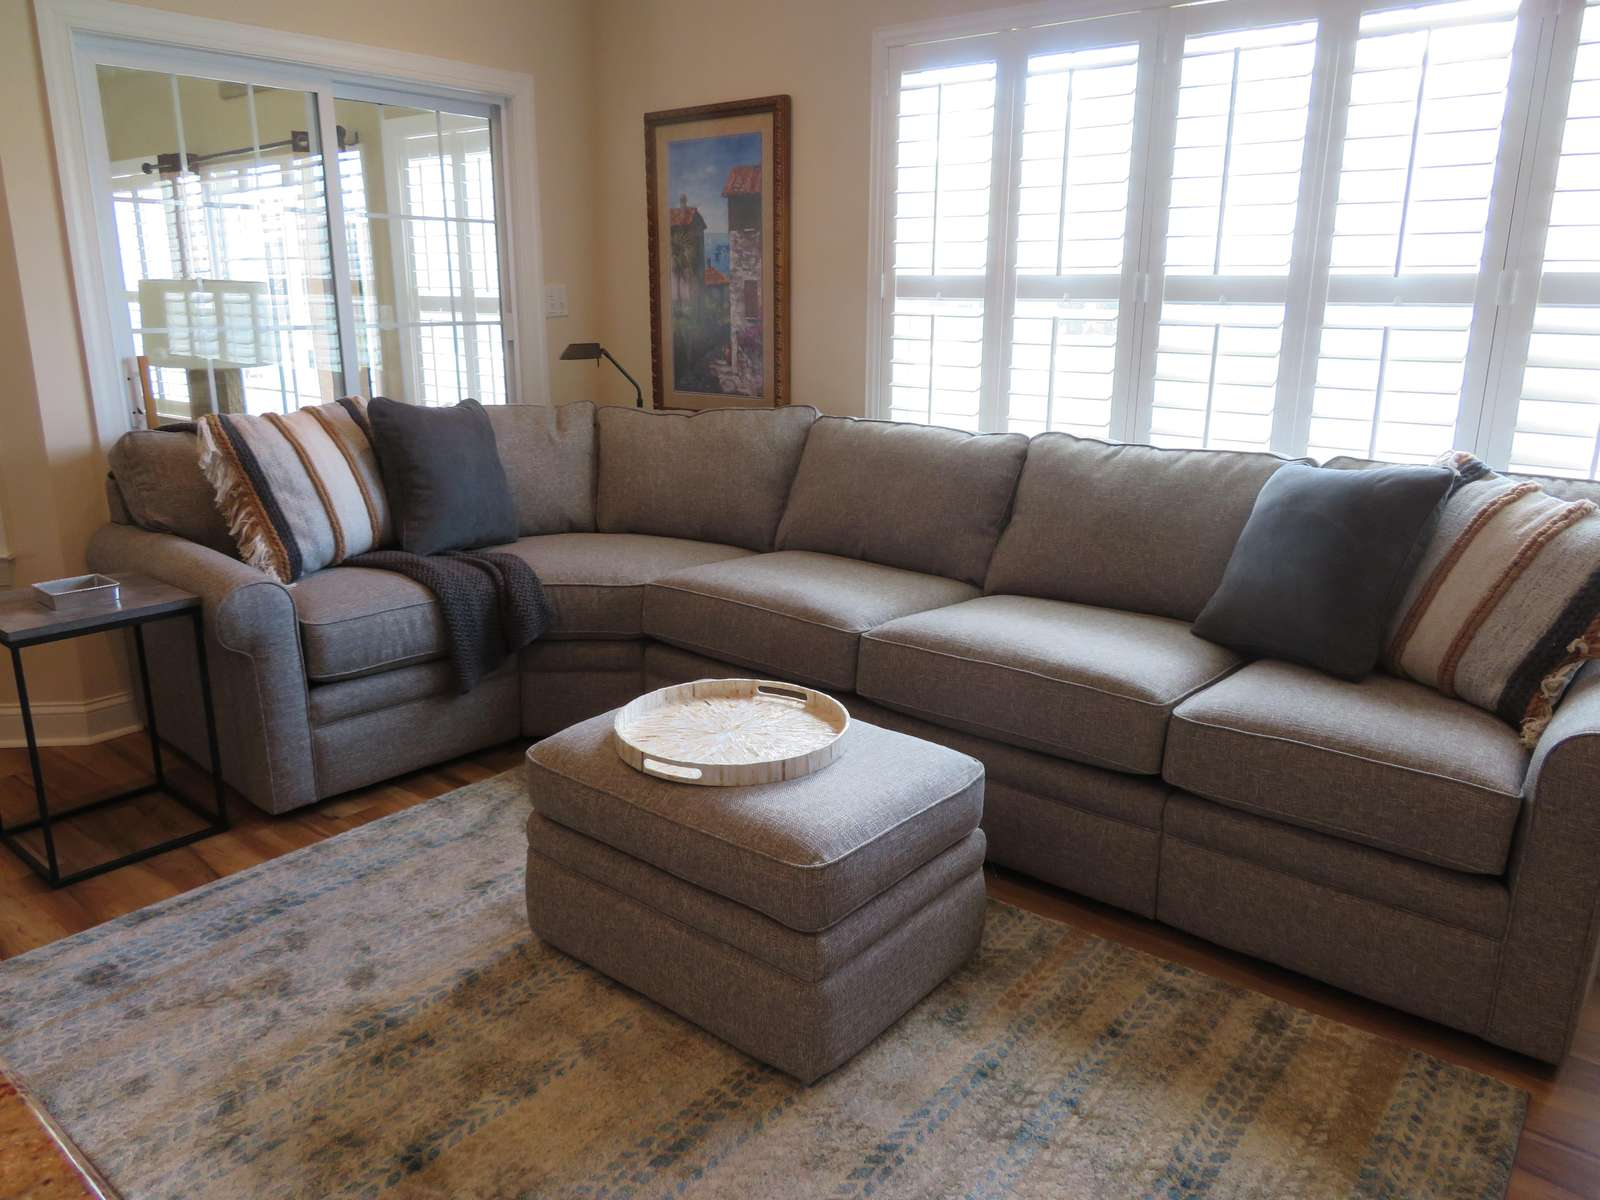 Family room sectional (includes sleeper sofa)